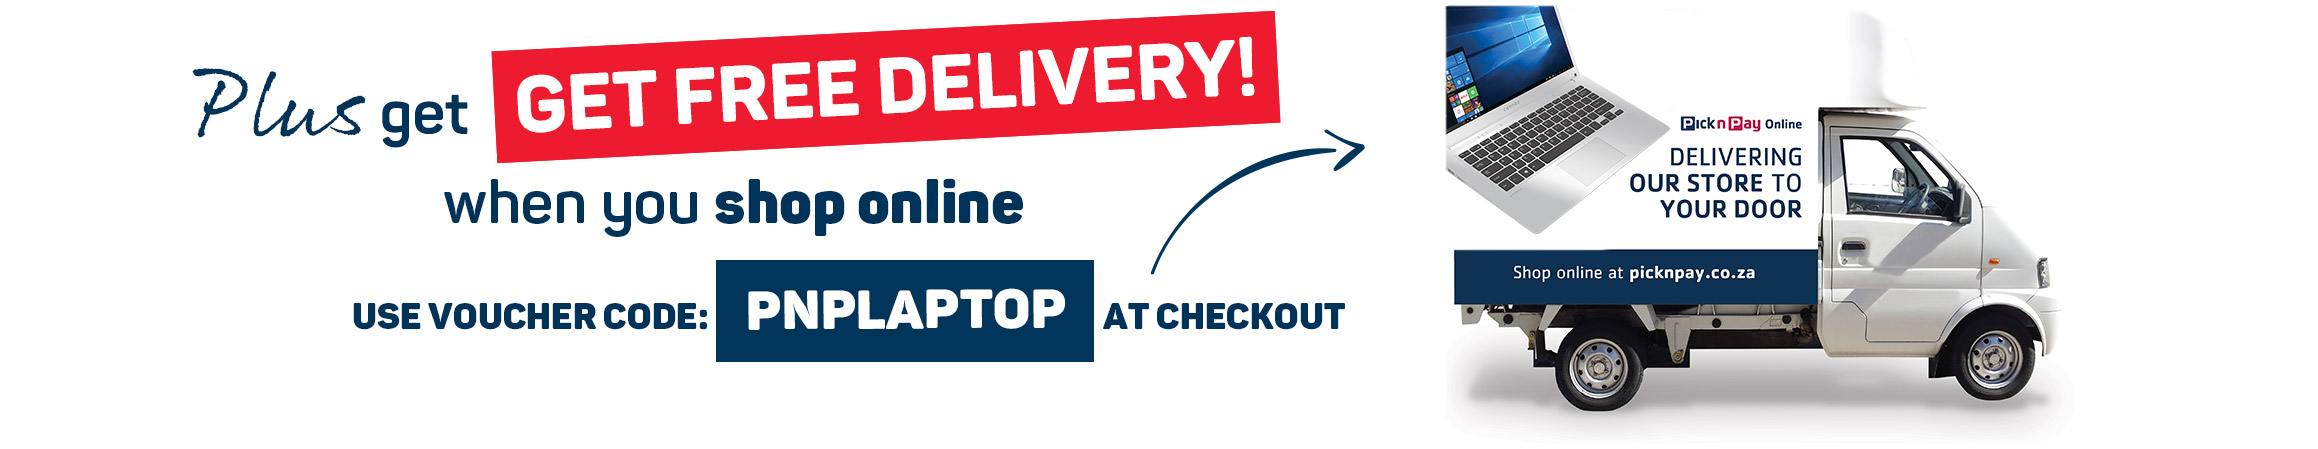 Plus get free delivery when you shop online. Use voucher code: PNPLAPTOP at checkout